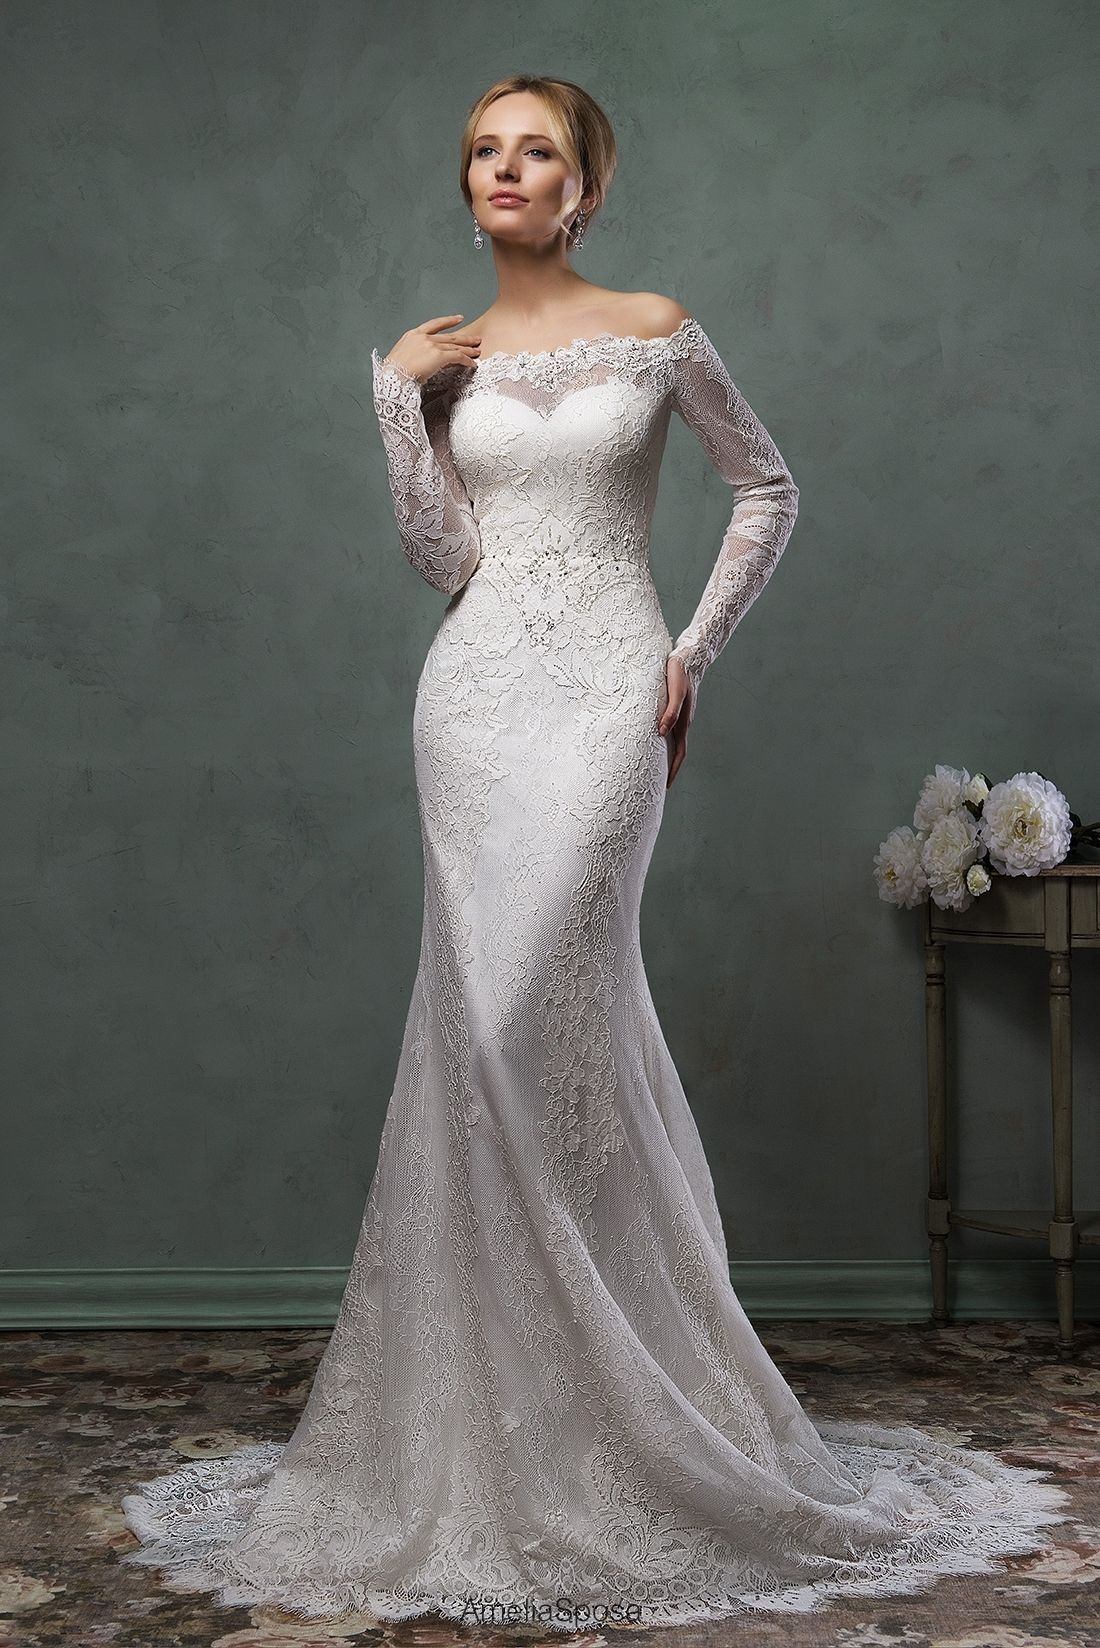 Wedding dress Ofelia | Amelia Sposa 2016 | AmeliaSposa | Pinterest ...